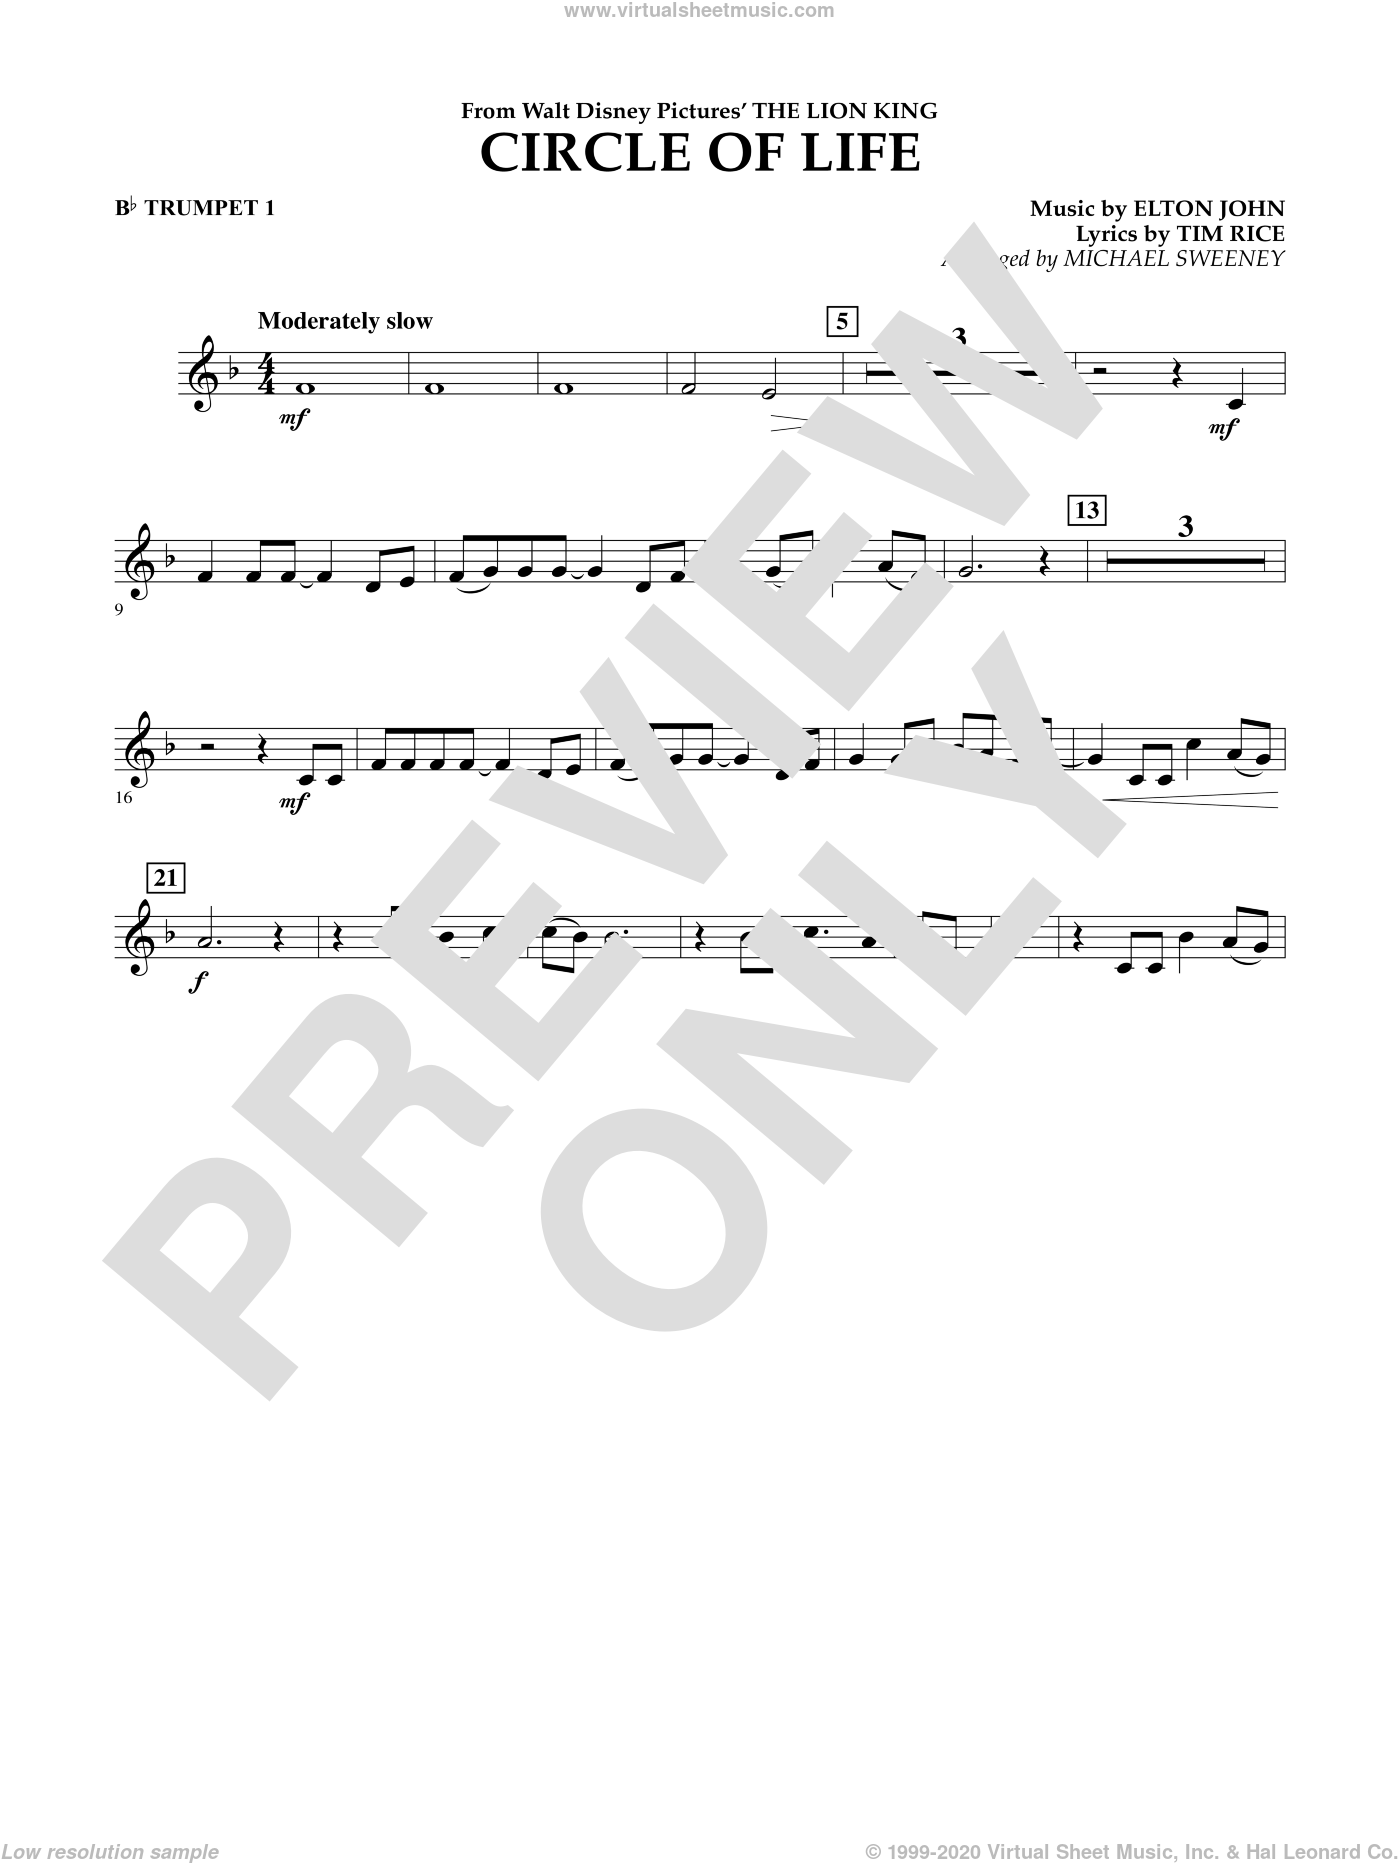 Circle of Life (from The Lion King) sheet music for concert band (Bb trumpet 1) by Elton John, Michael Sweeney and Tim Rice, intermediate skill level